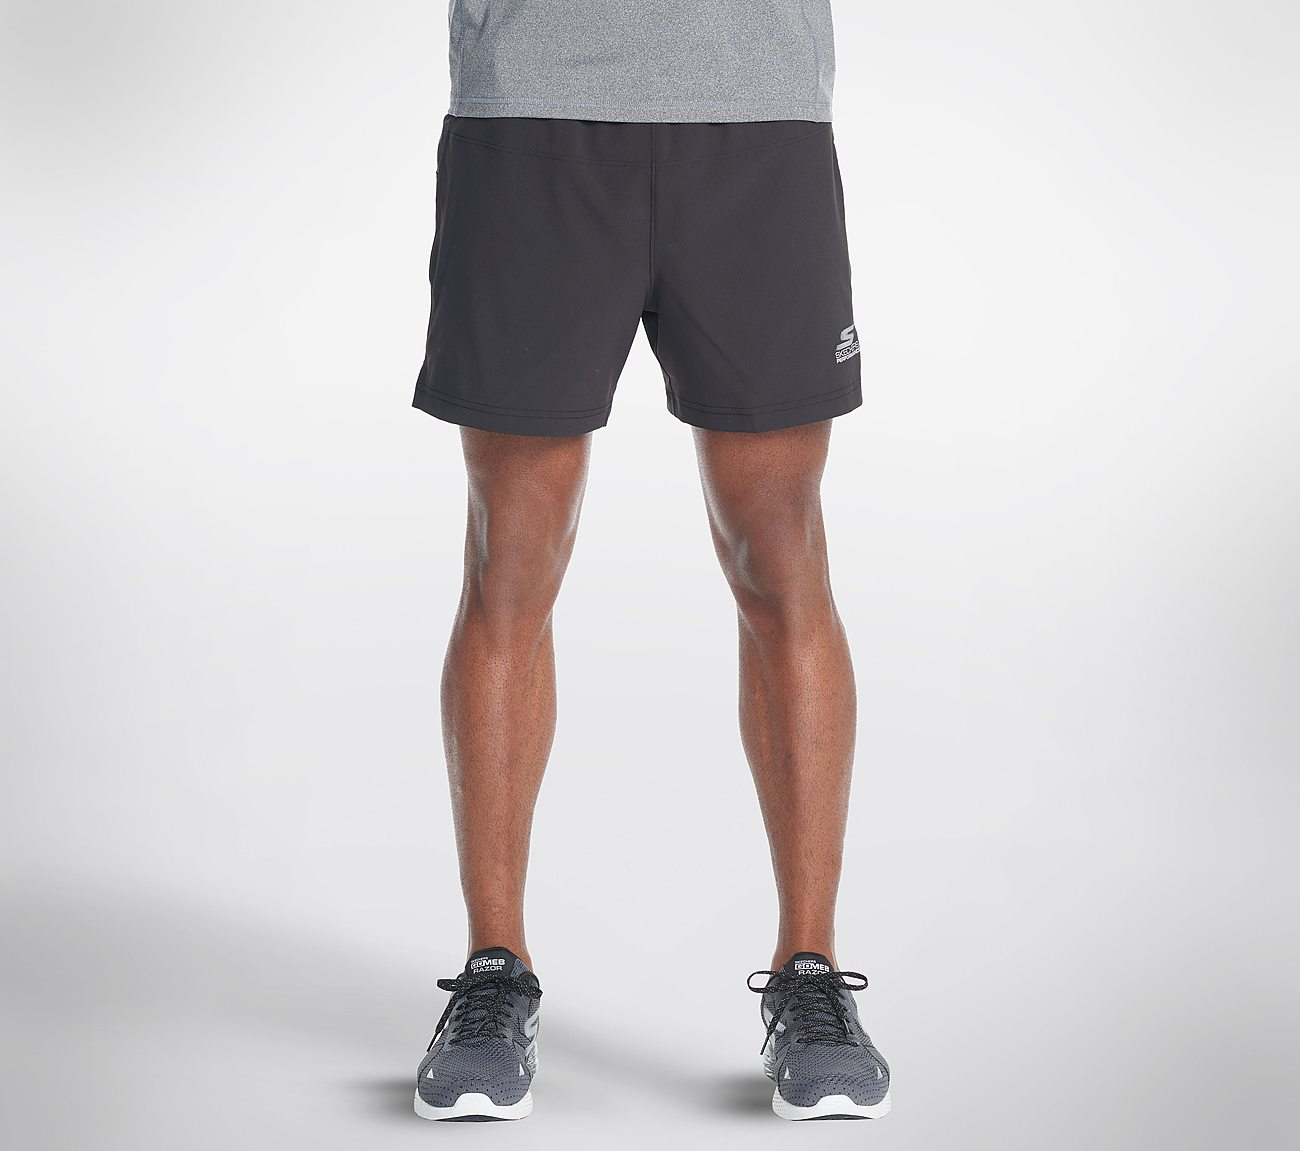 Buy SKECHERS Distance 5-Inch Shorts